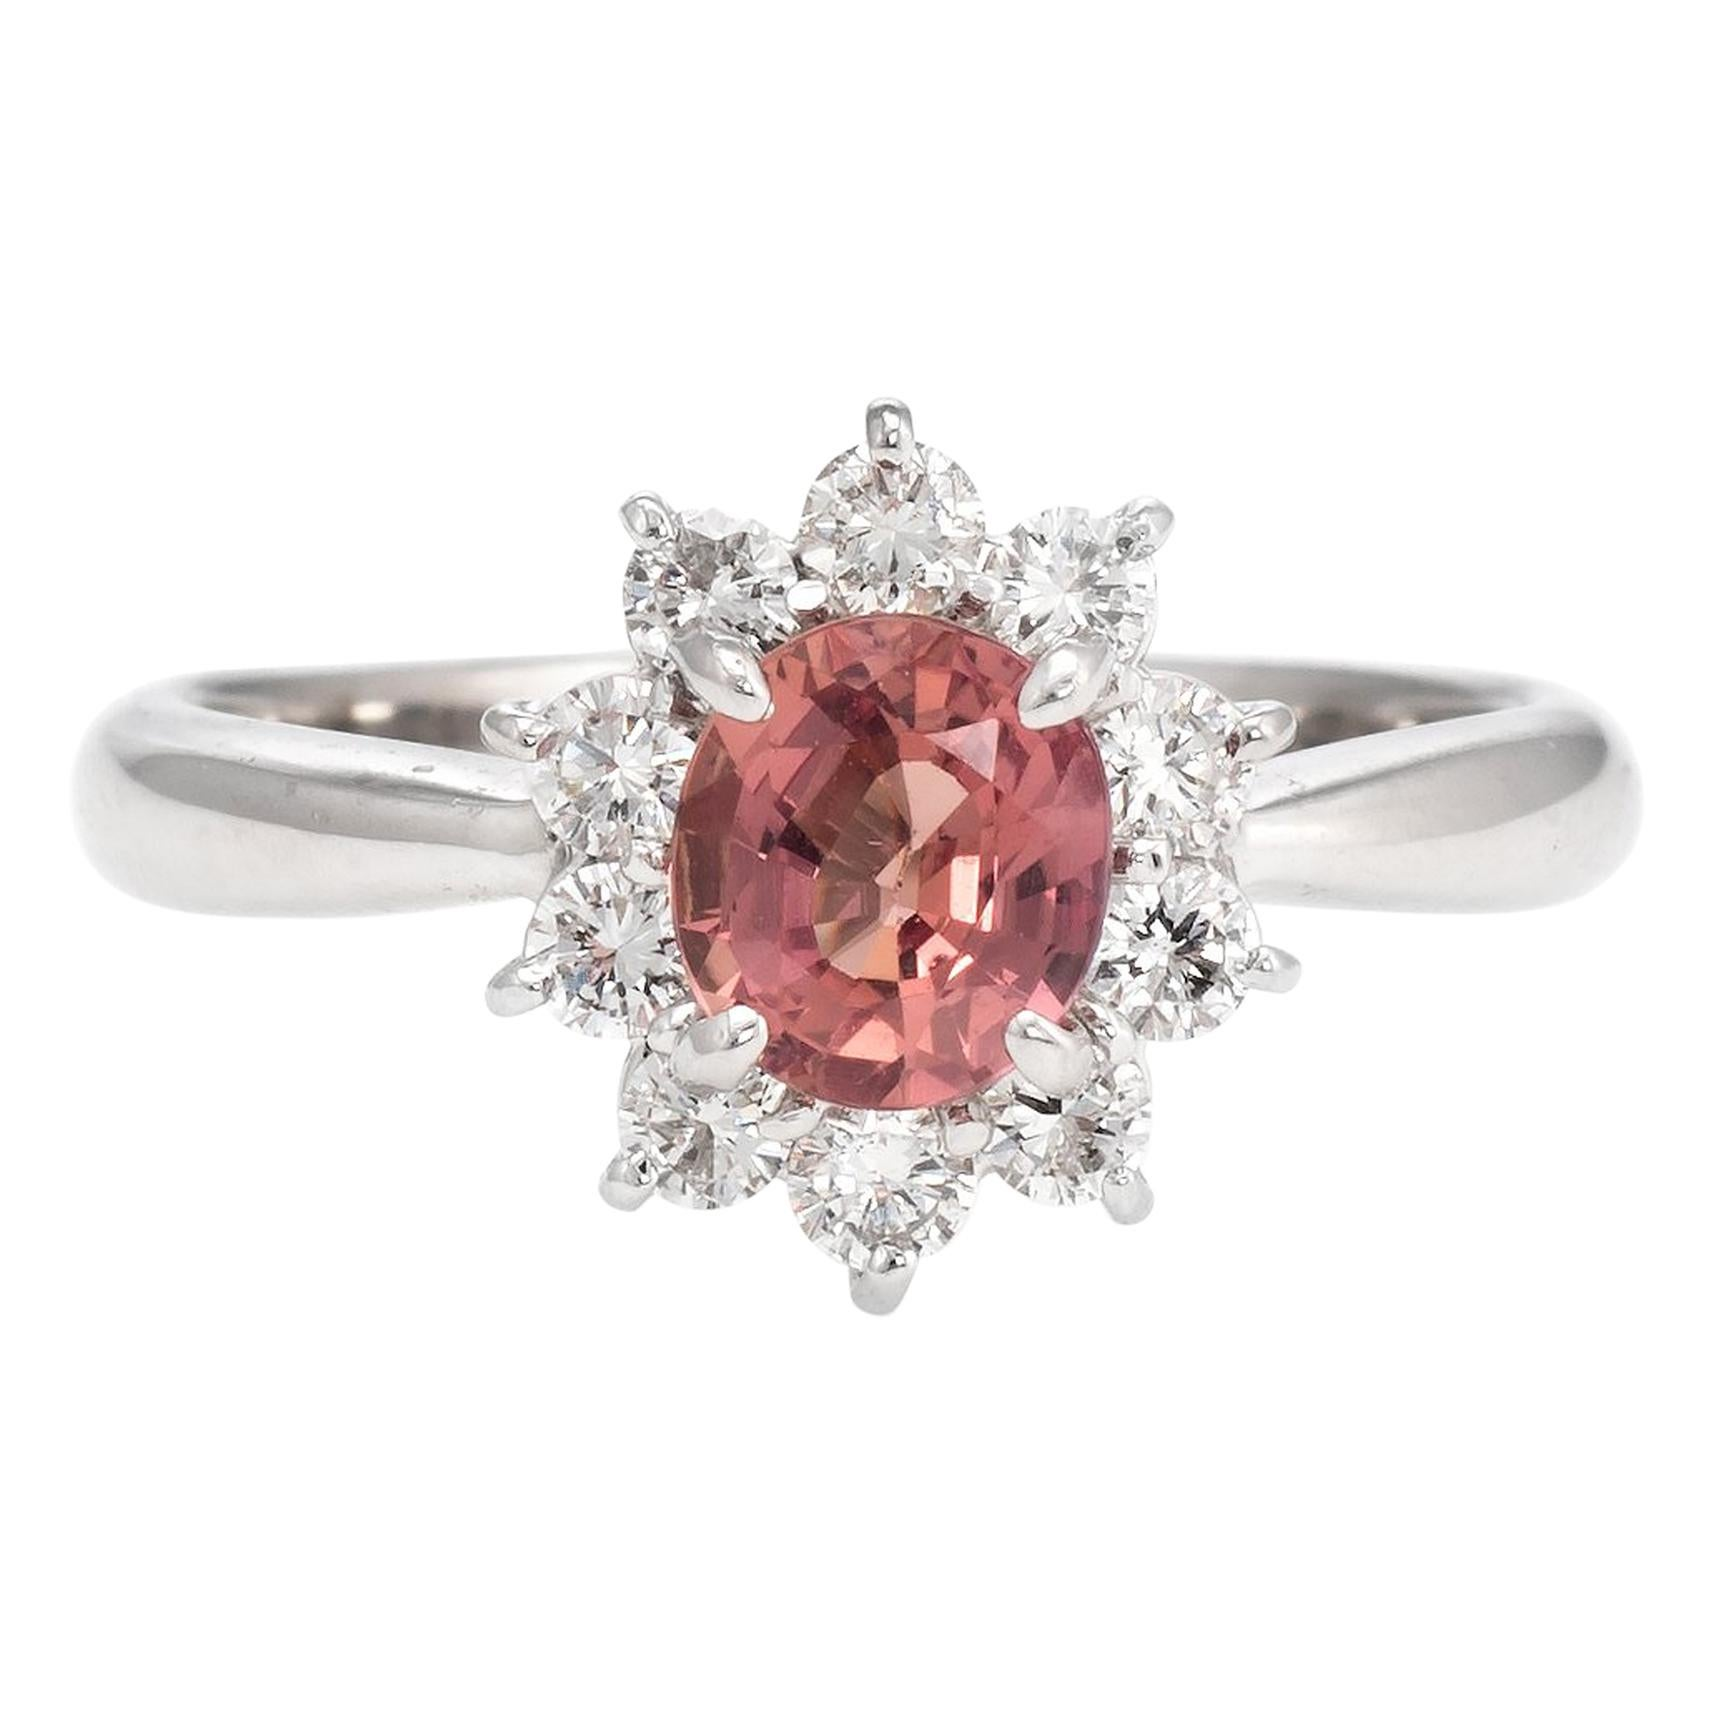 No Heat Natural Musky Pink Padparadscha Sapphire Ring Platinum Engagement